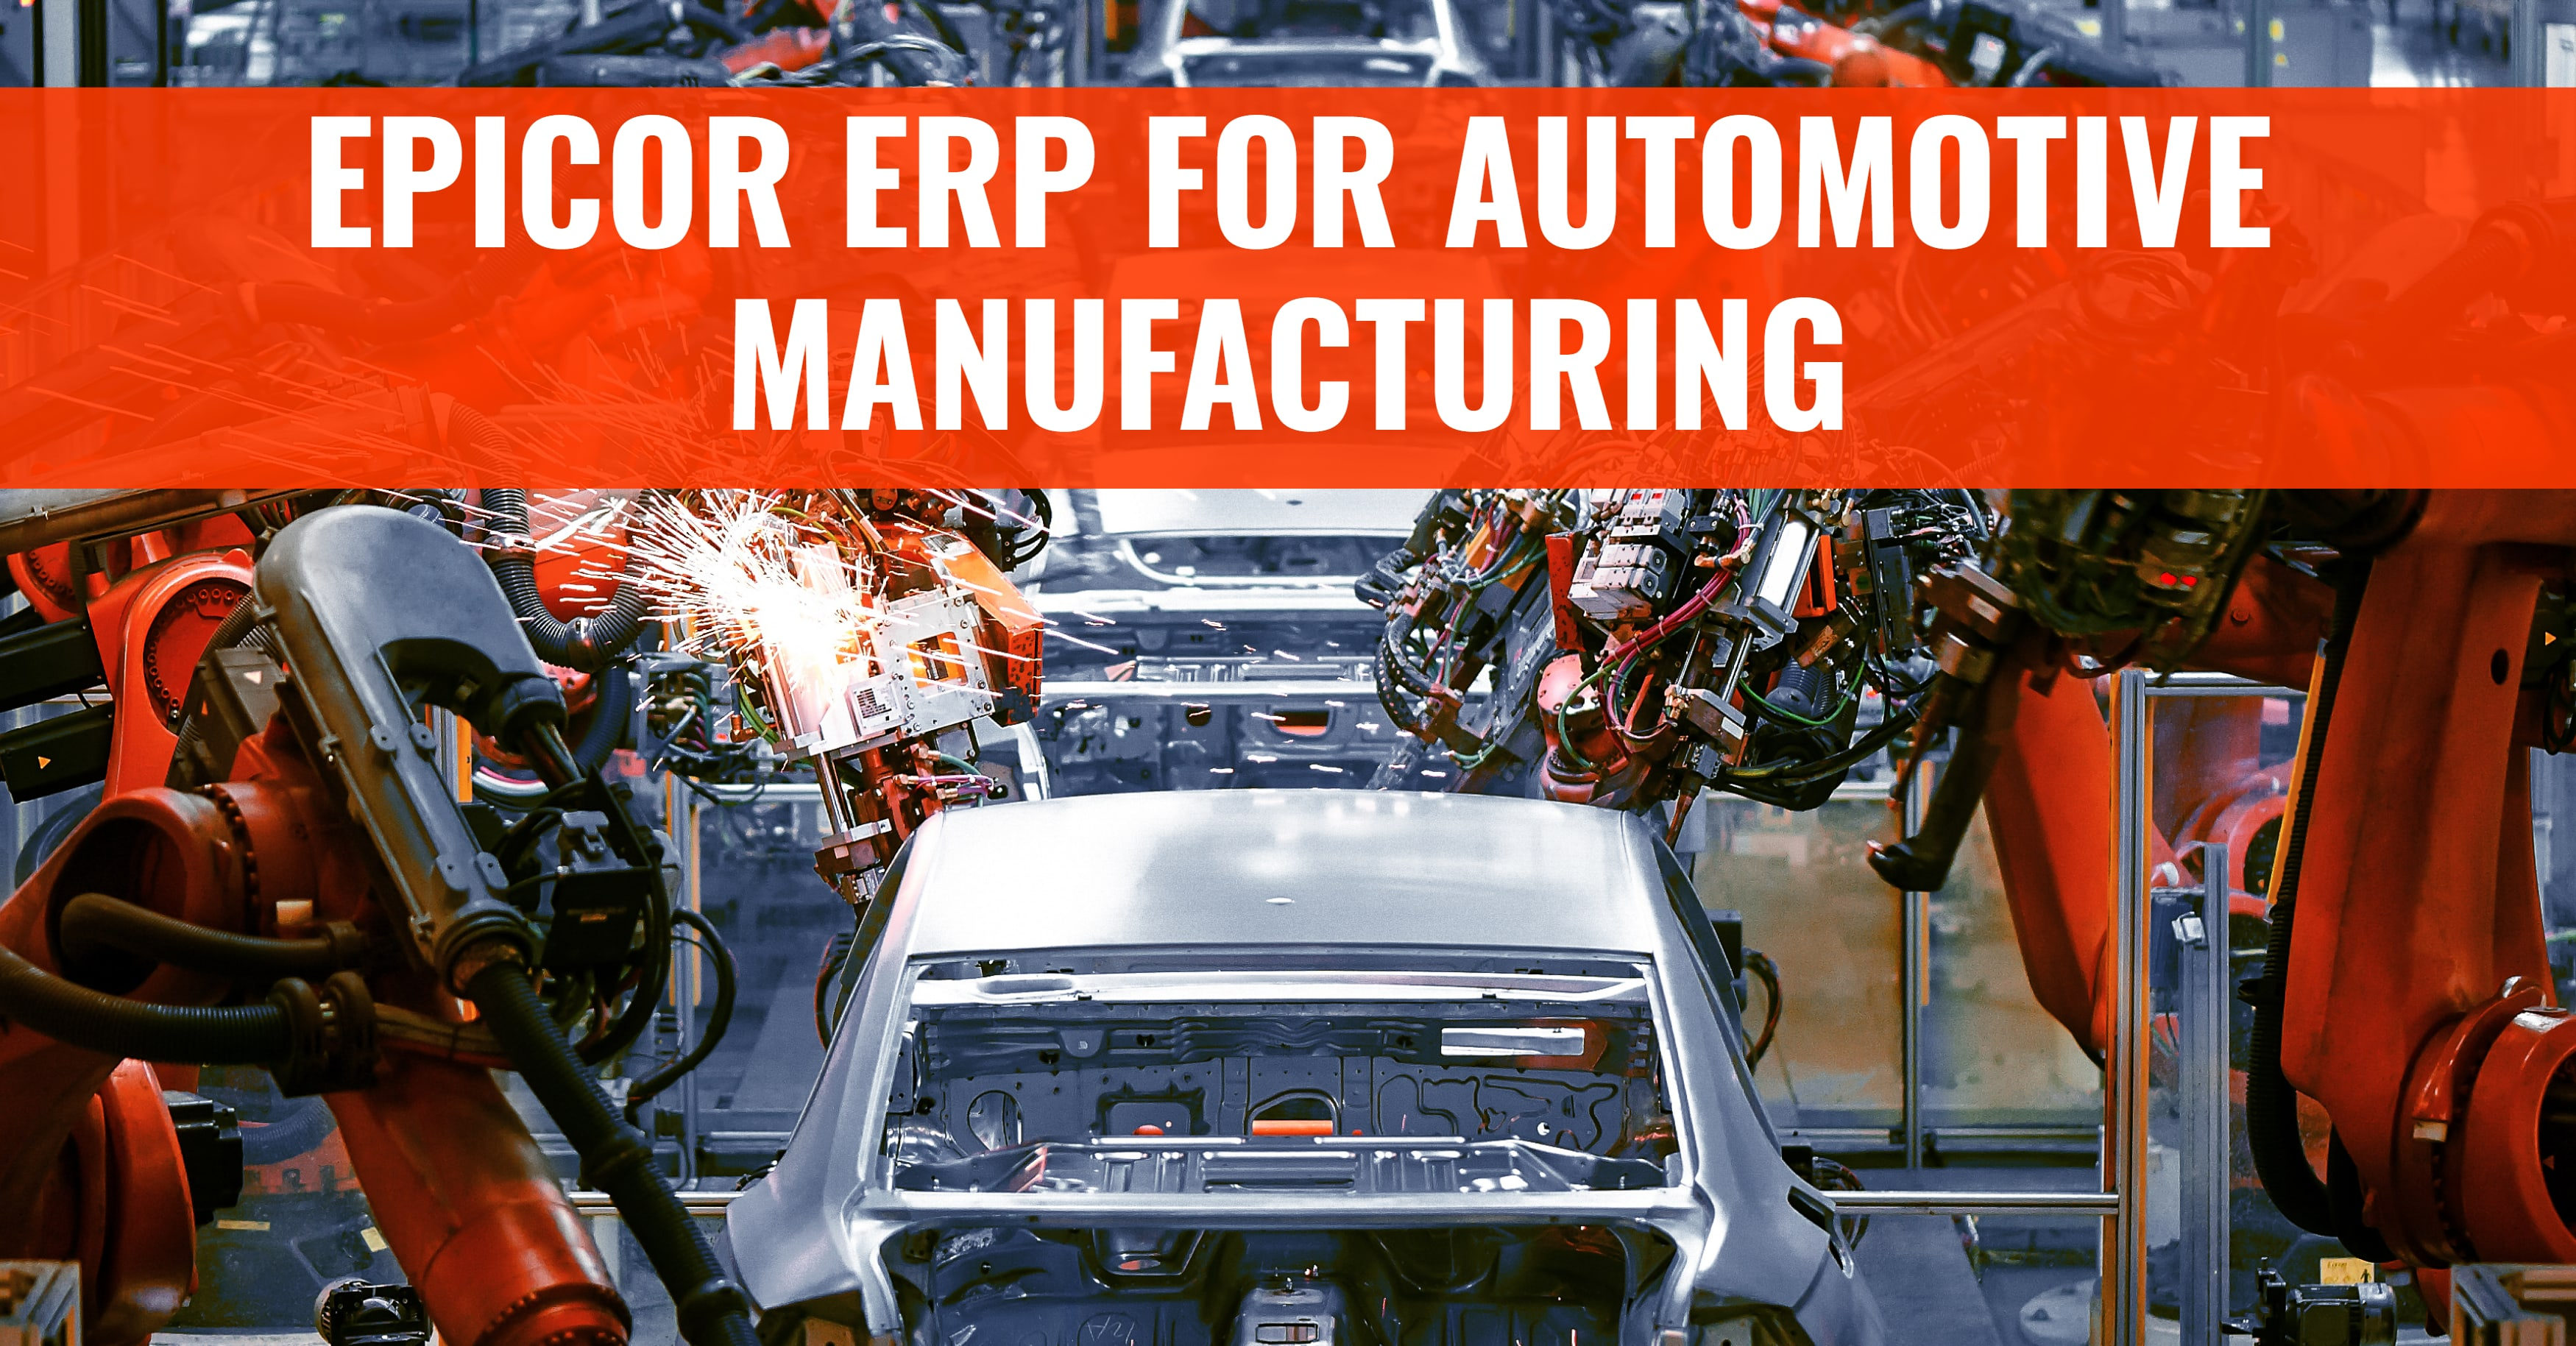 Automotive Manufacturers Drive Revenue with Epicor ERP